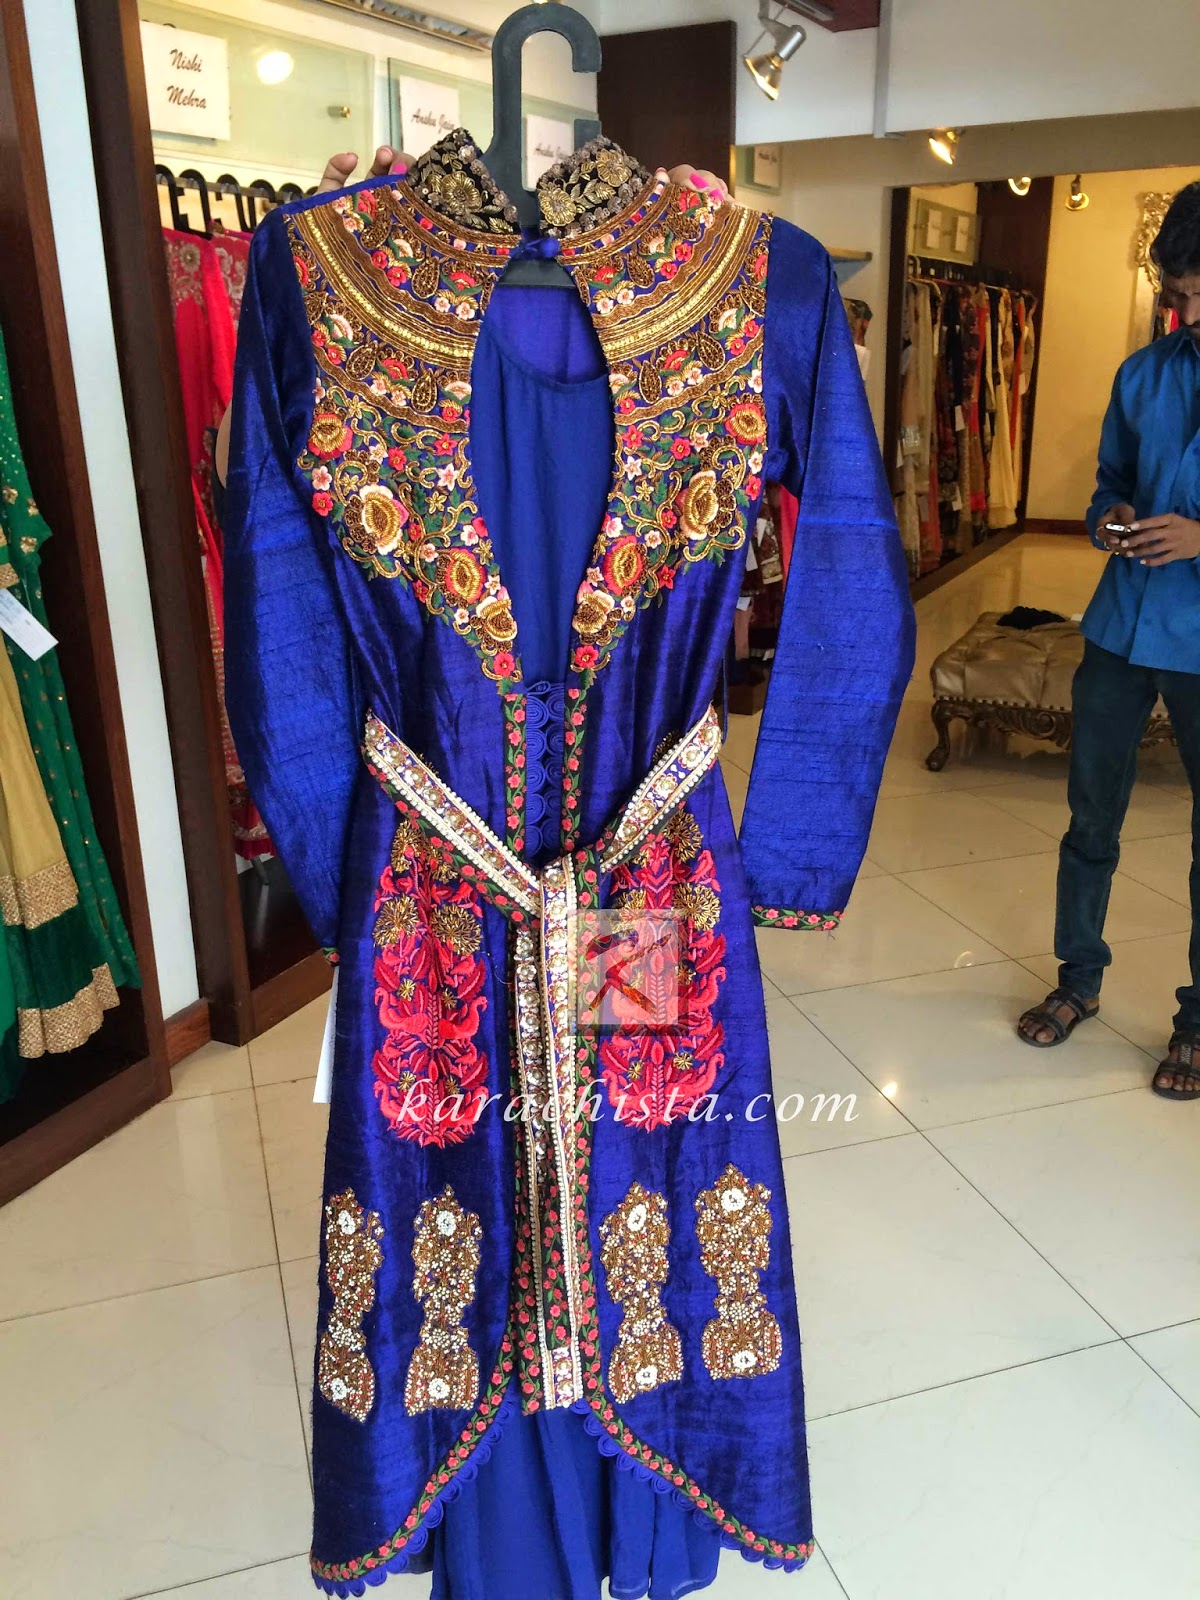 Royal Blue outfit by Indian designer Anshu Jain